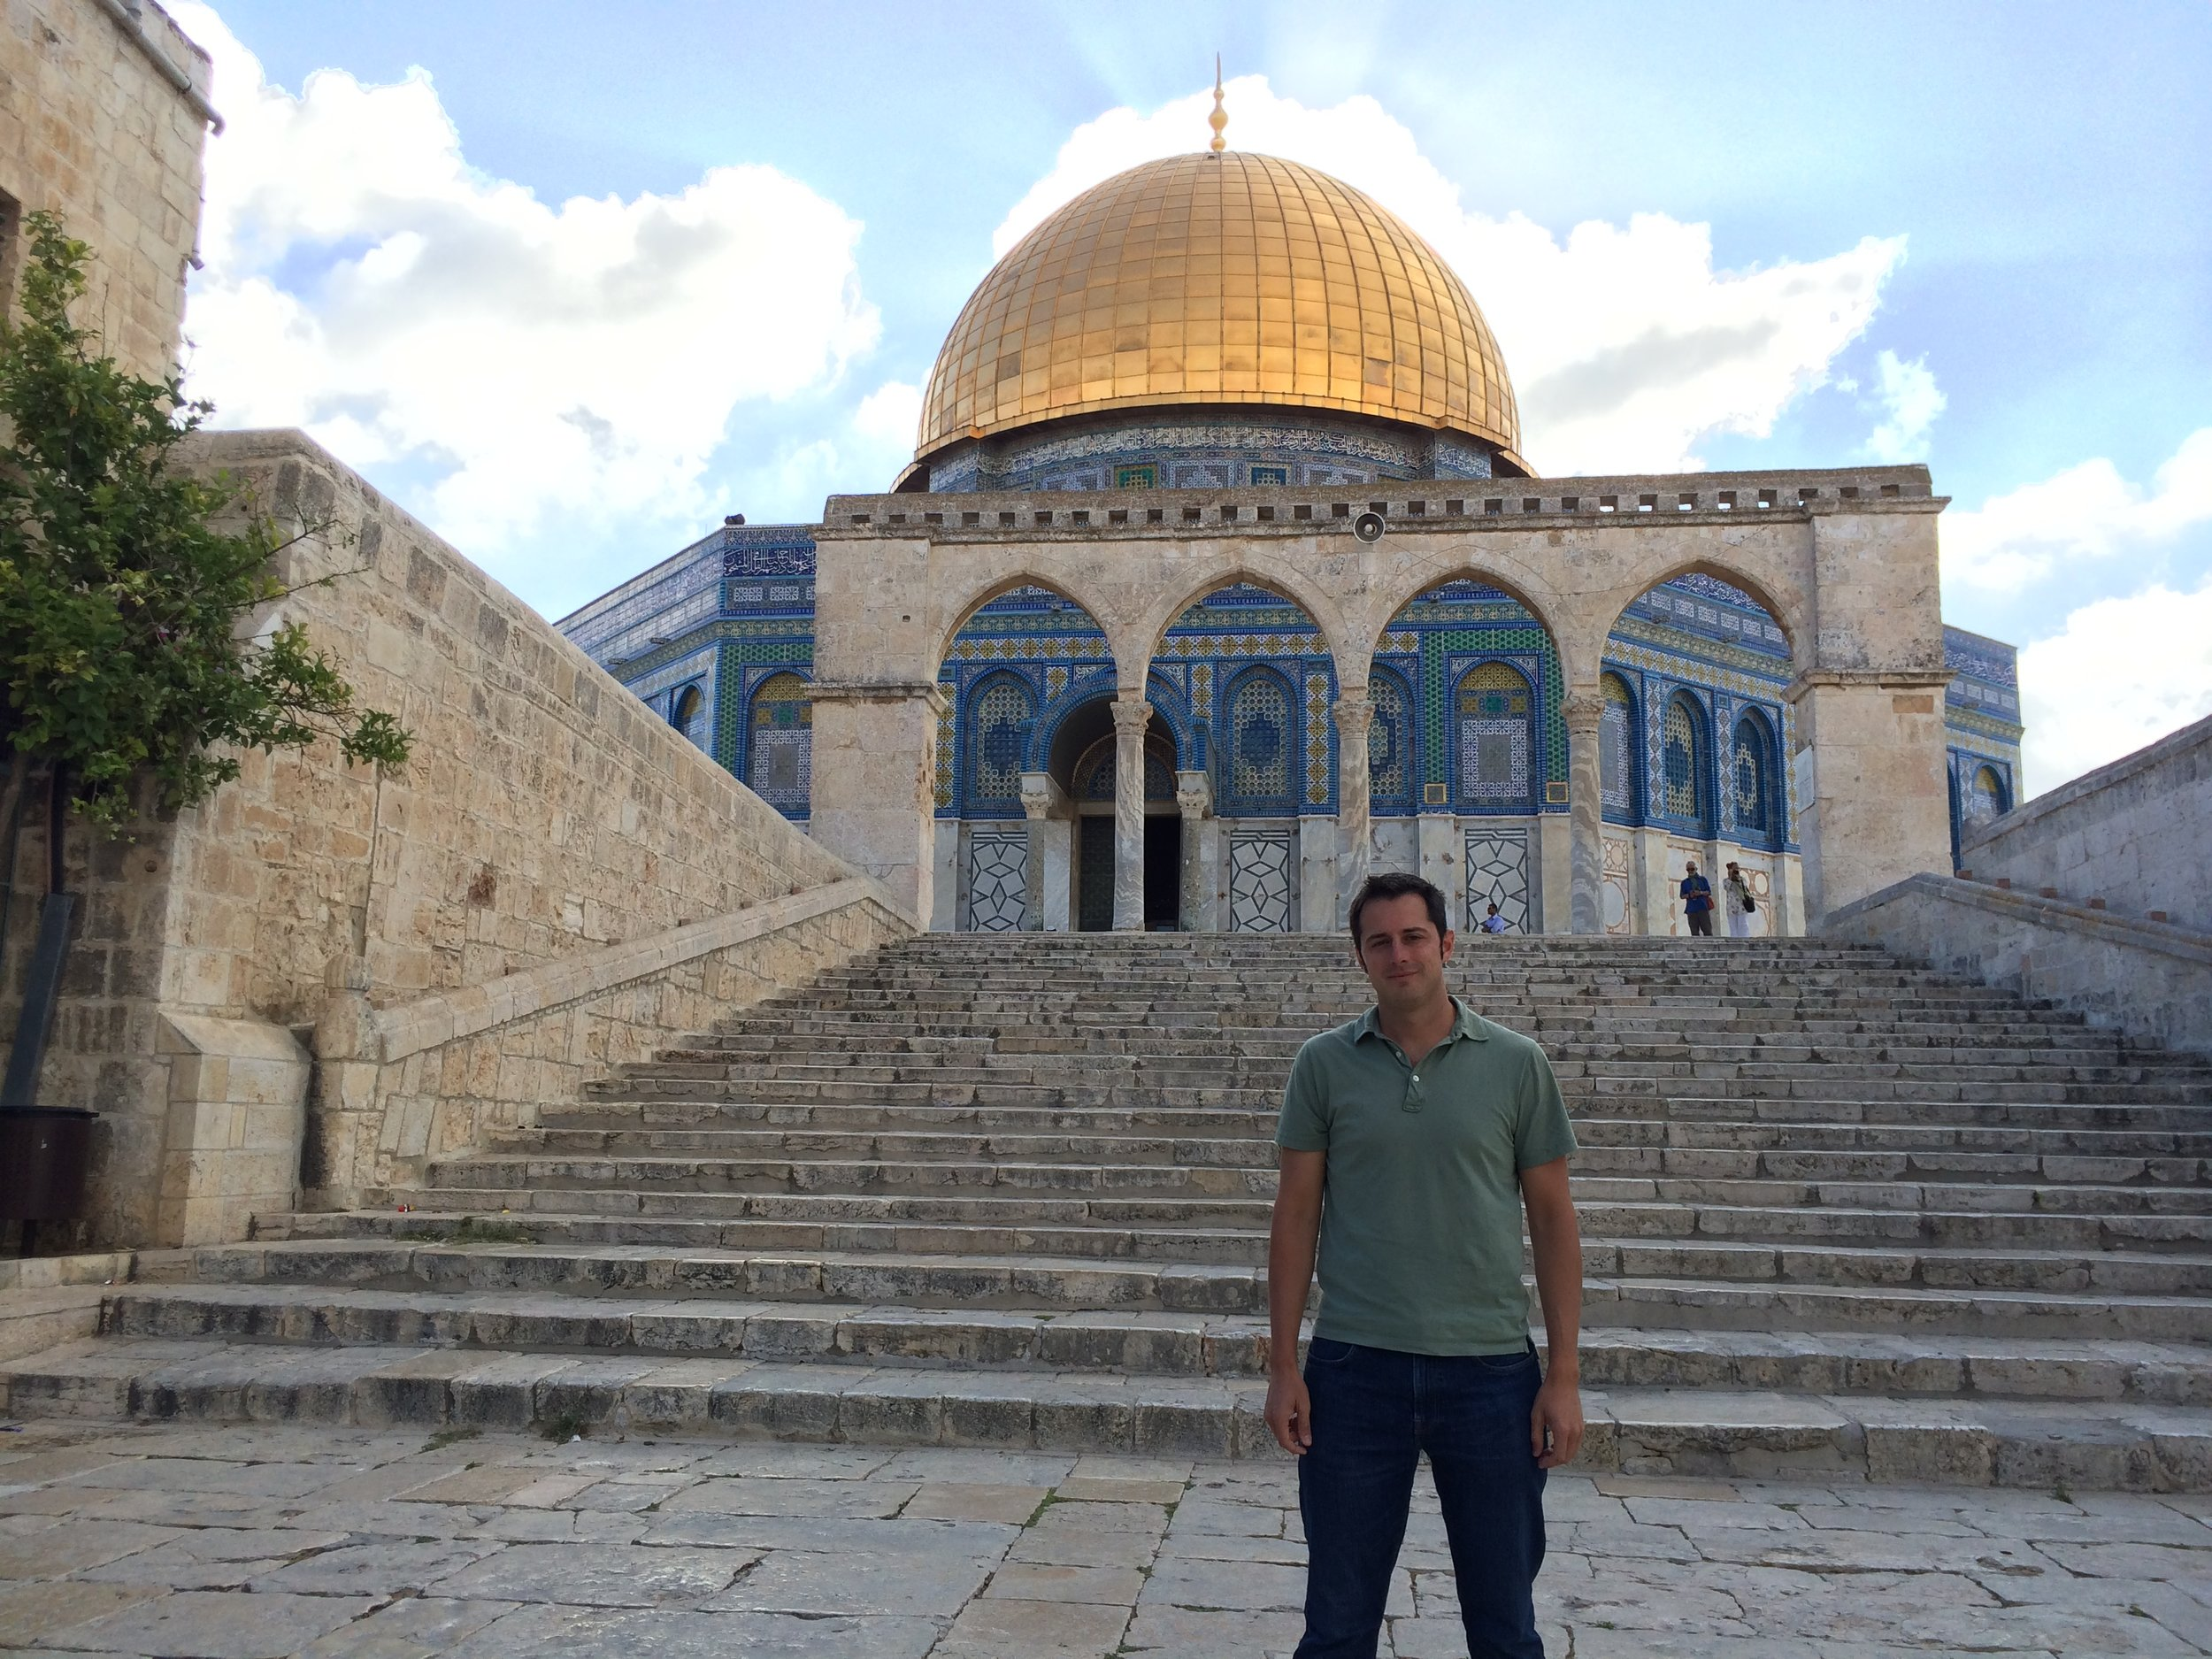 I am standing at the site of the ancient Temple to Yahweh, in Jerusalem.  You will quickly note it is no longer there.  It was torn down almost 2,000 years ago by the Romans.  Now, in its place is the famous Muslim Dome of the Rock.